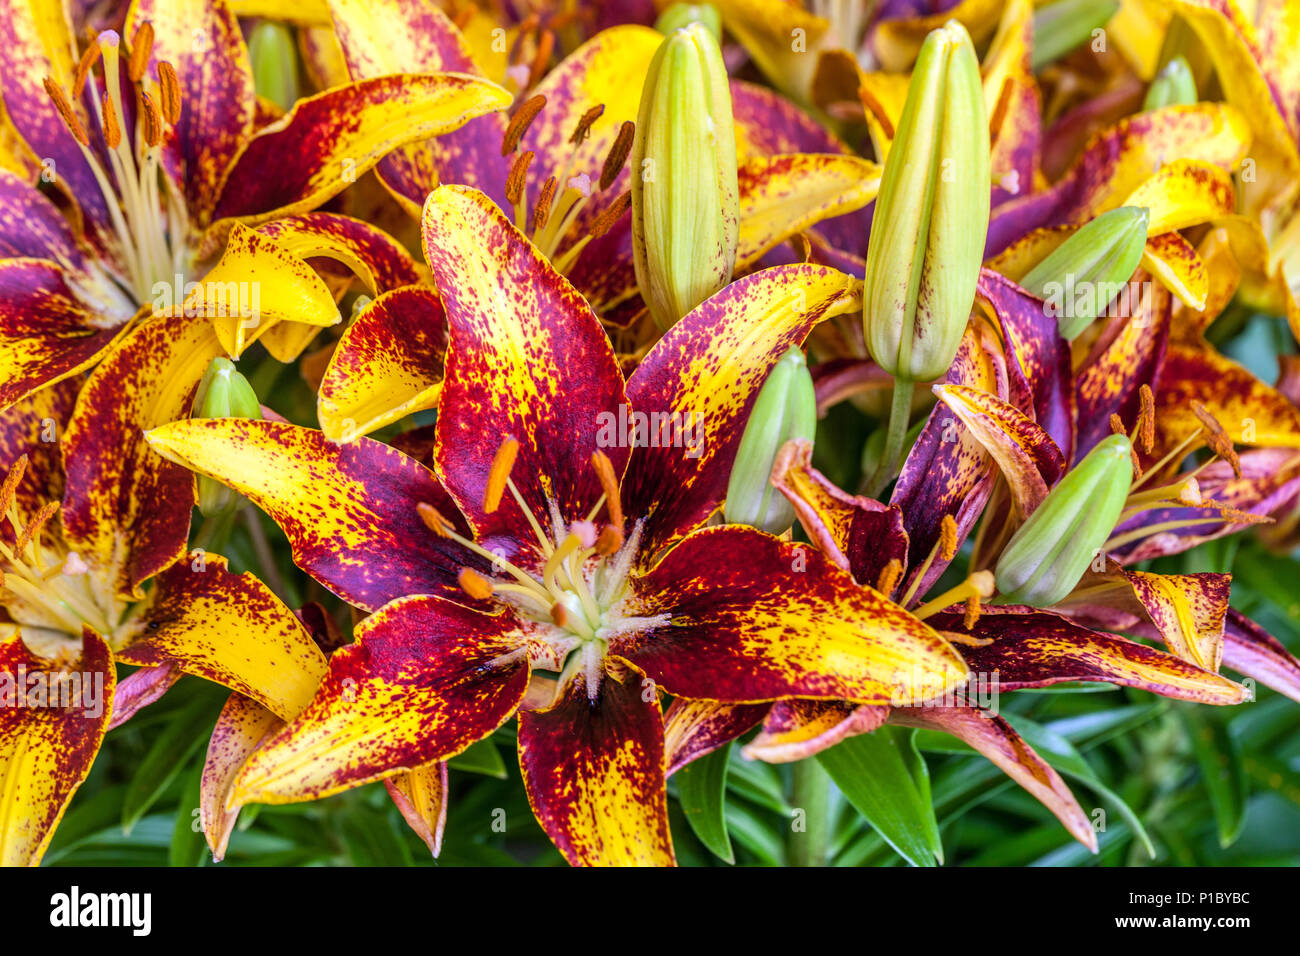 Lilium 'Tiny Sensation', asiatic lilies - Stock Image